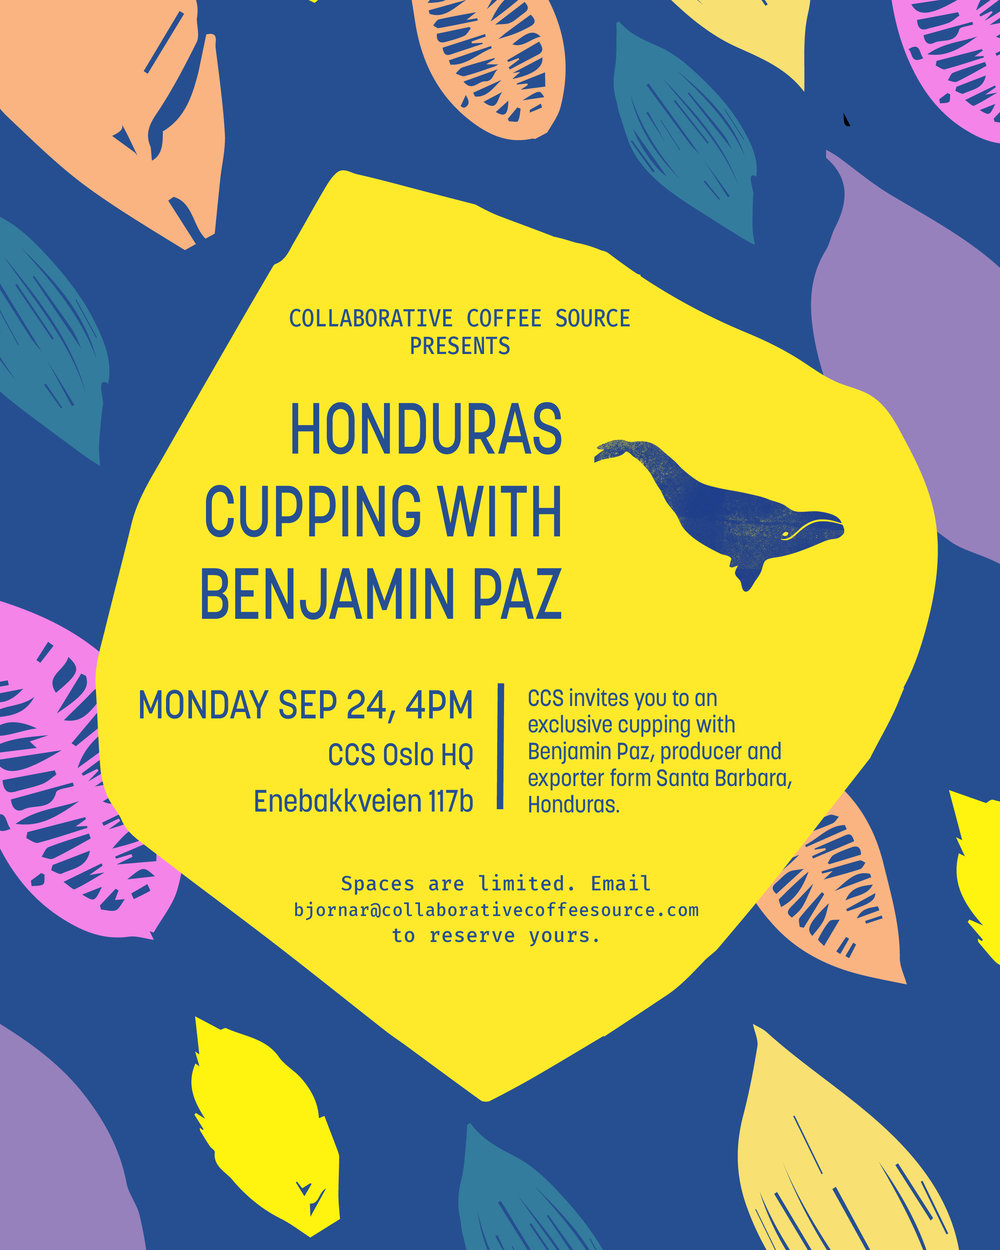 Honduras Cupping with Benjamin Poster.jpg